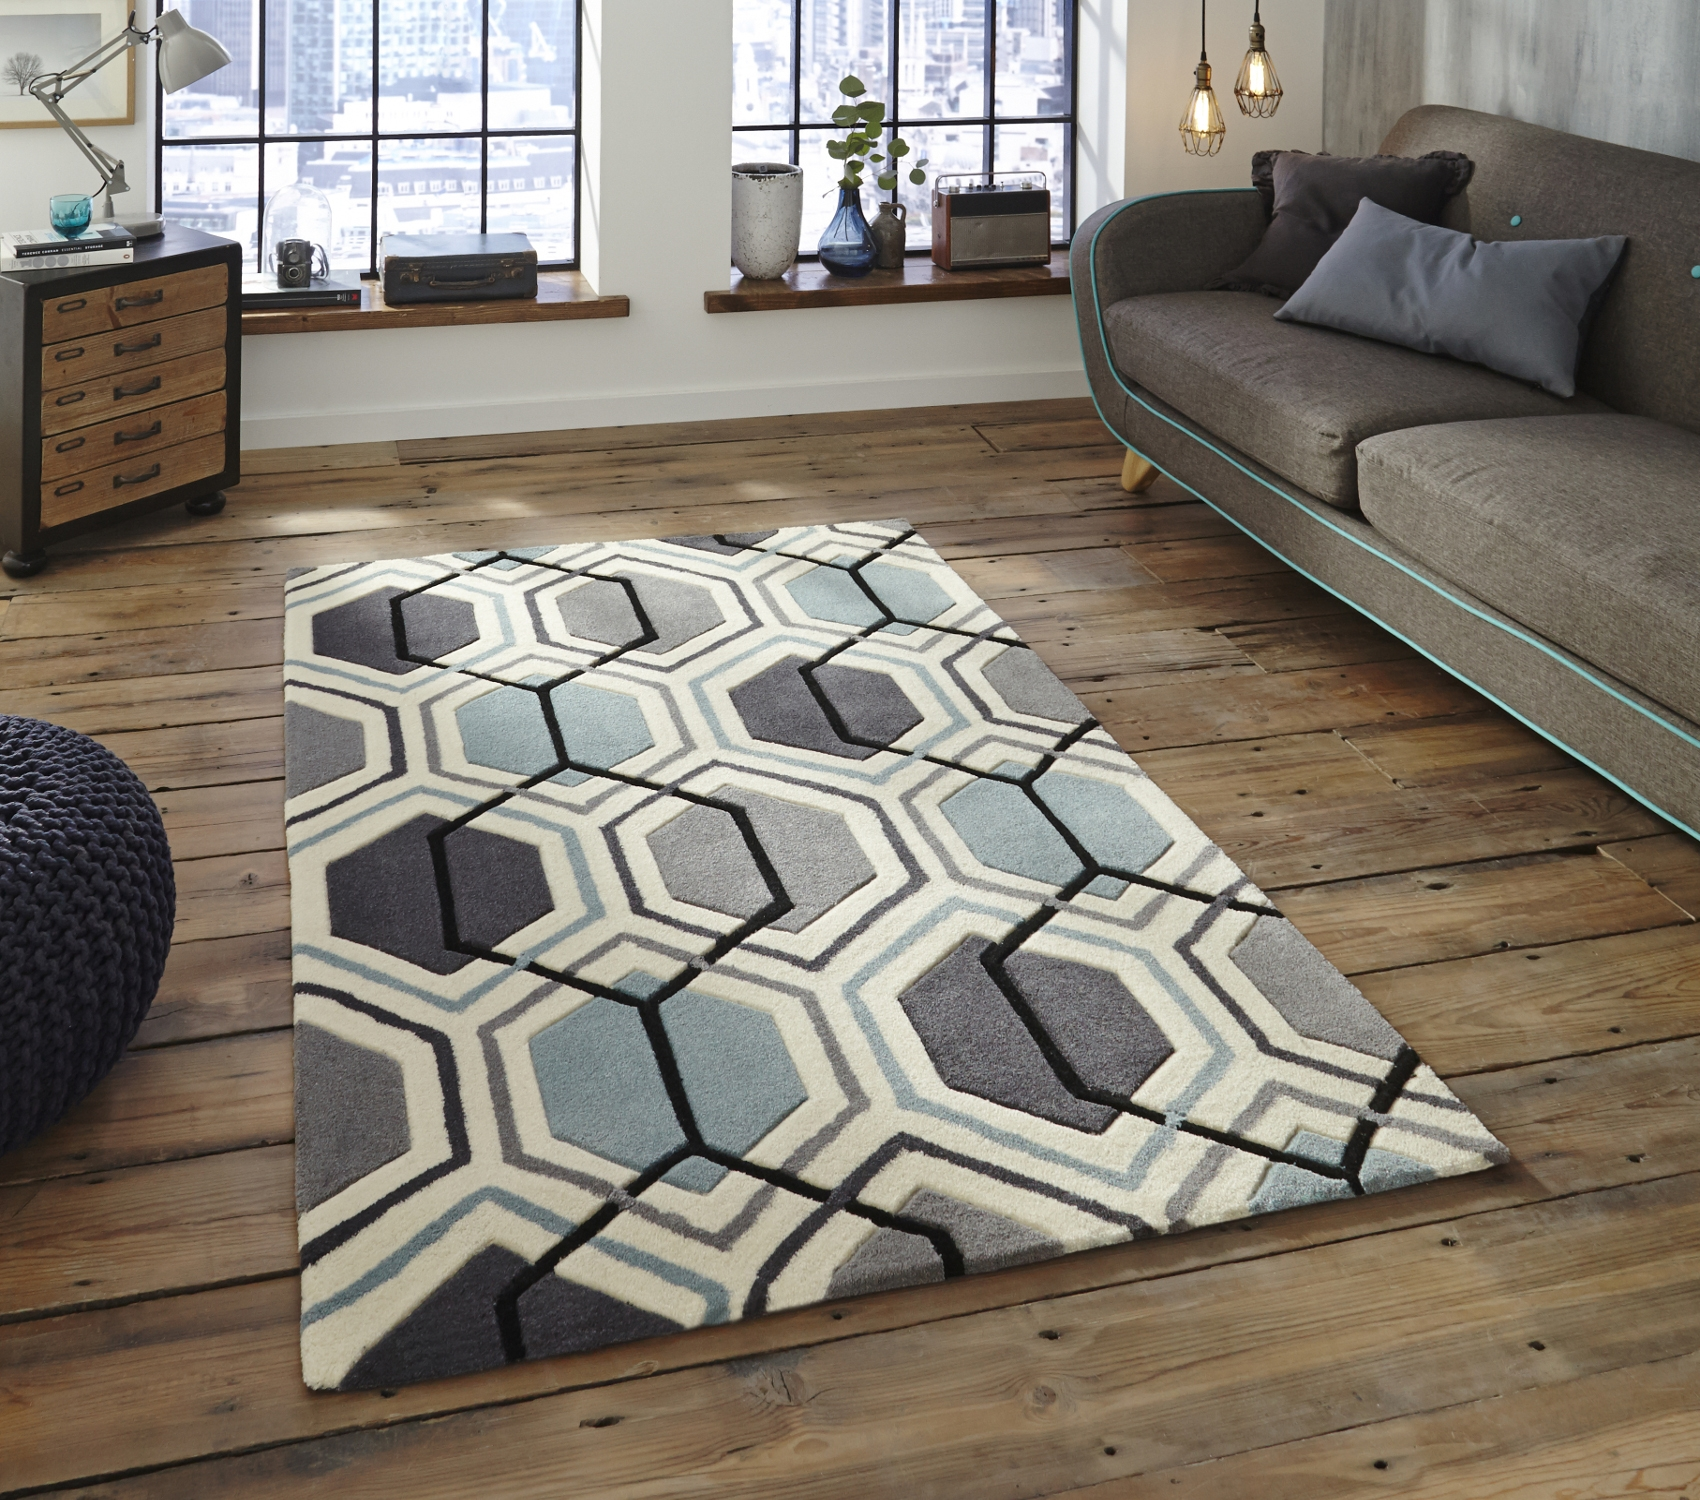 Geometric Design Rug Roselawnlutheran With Regard To Large Geometric Rugs (View 9 of 15)